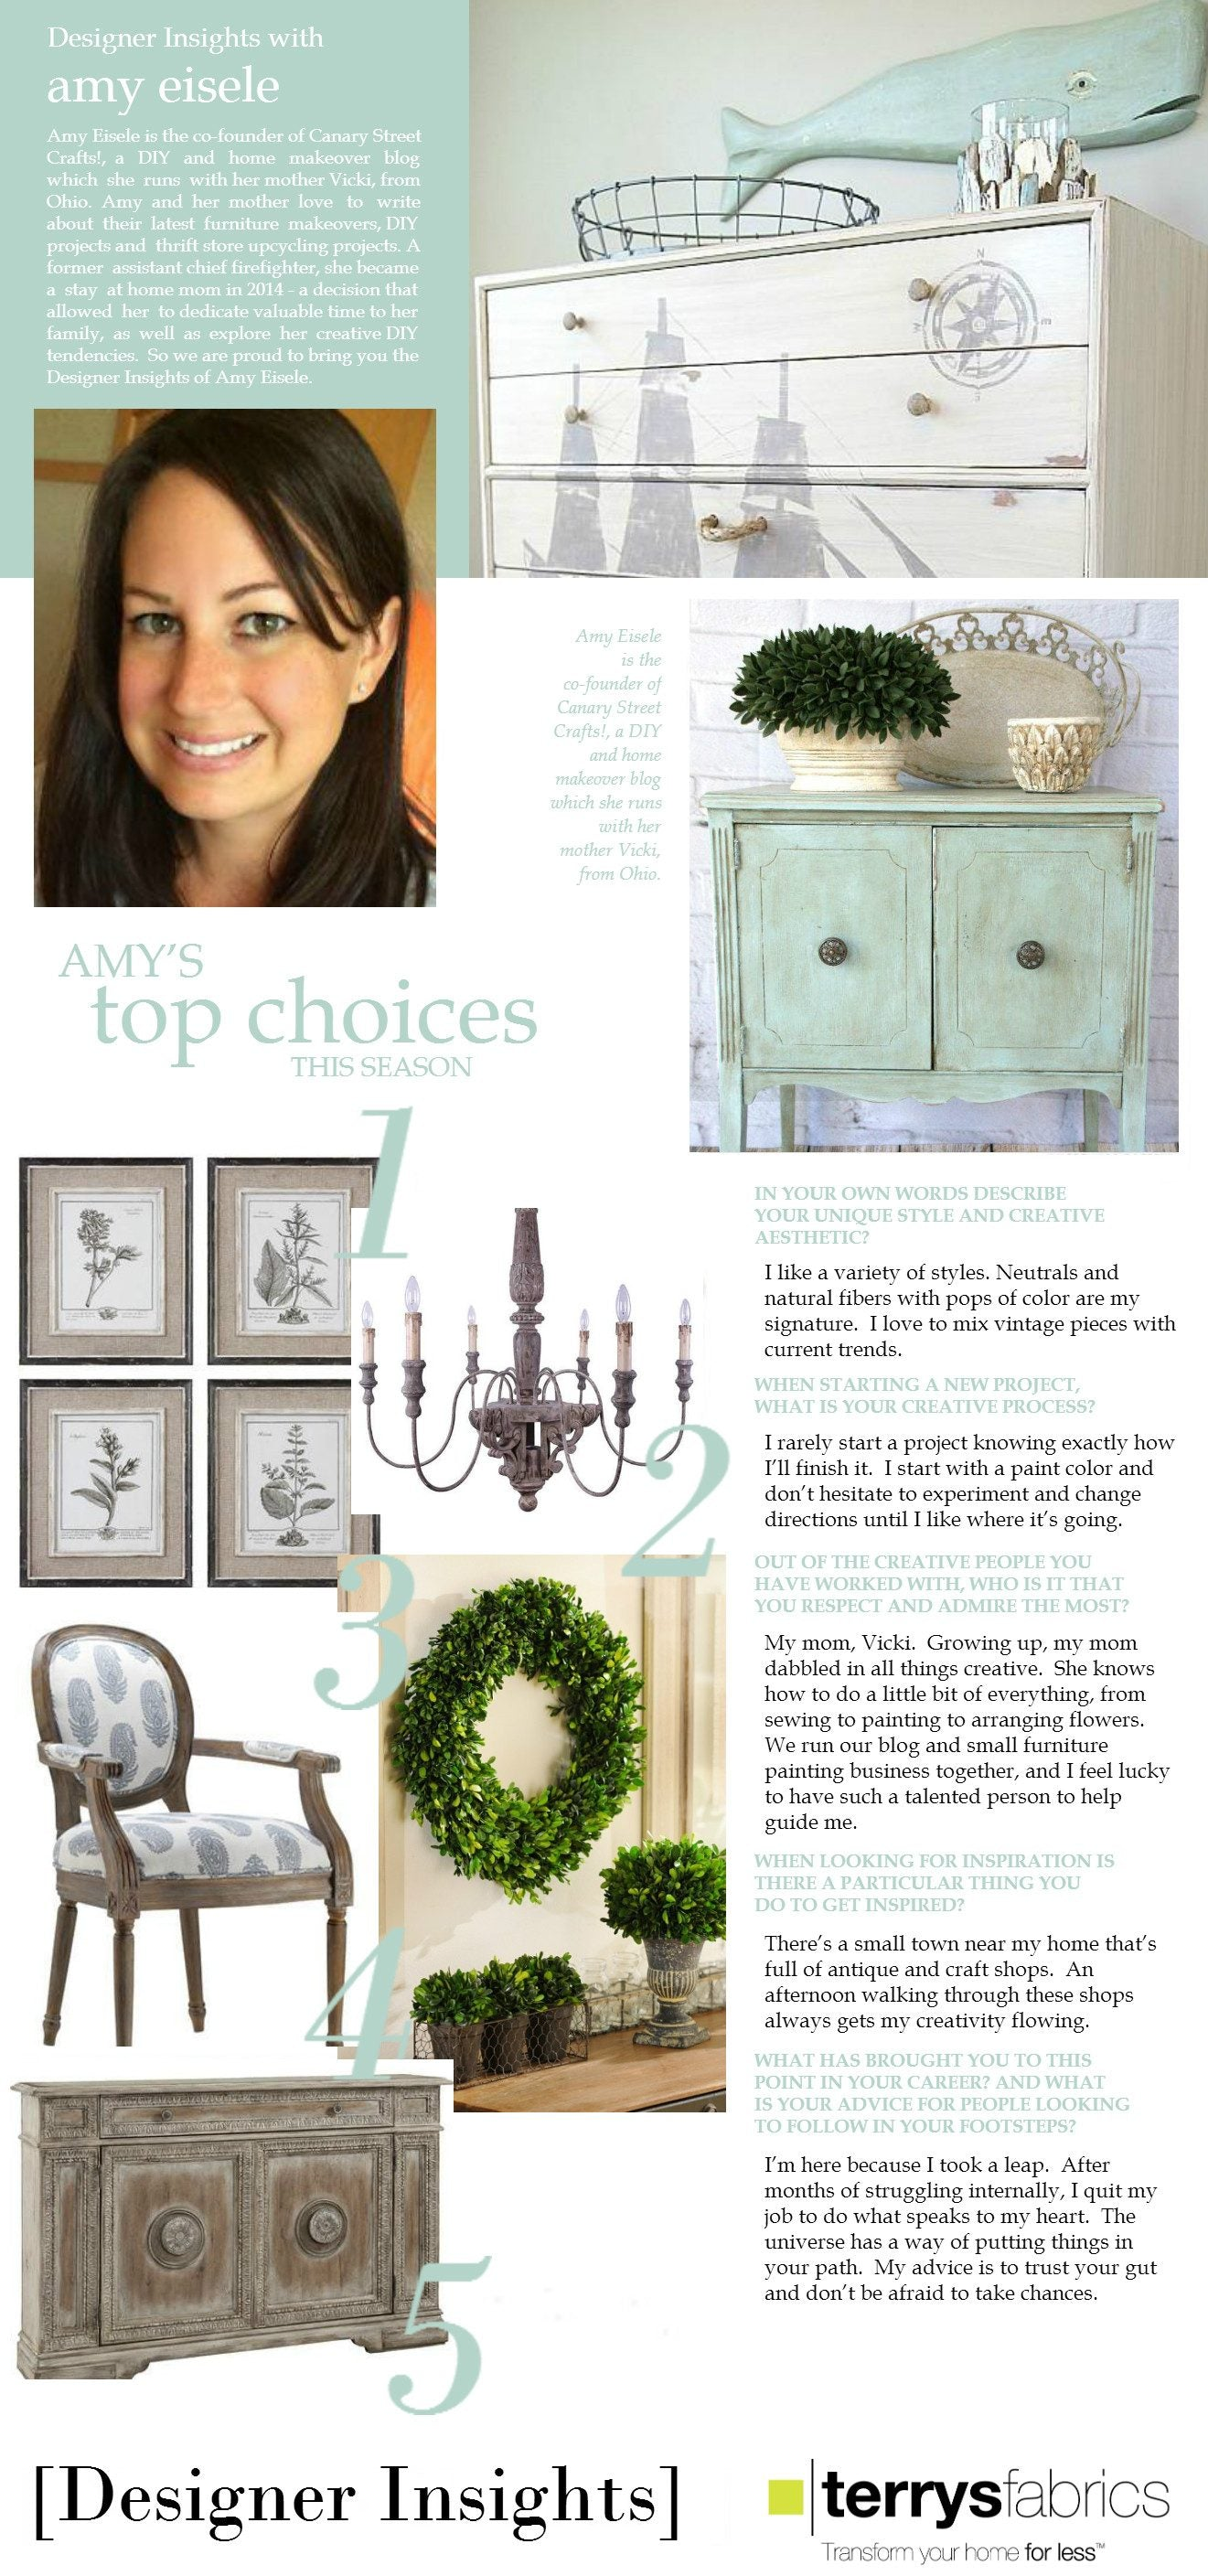 Designer Insights - Amy Eisele